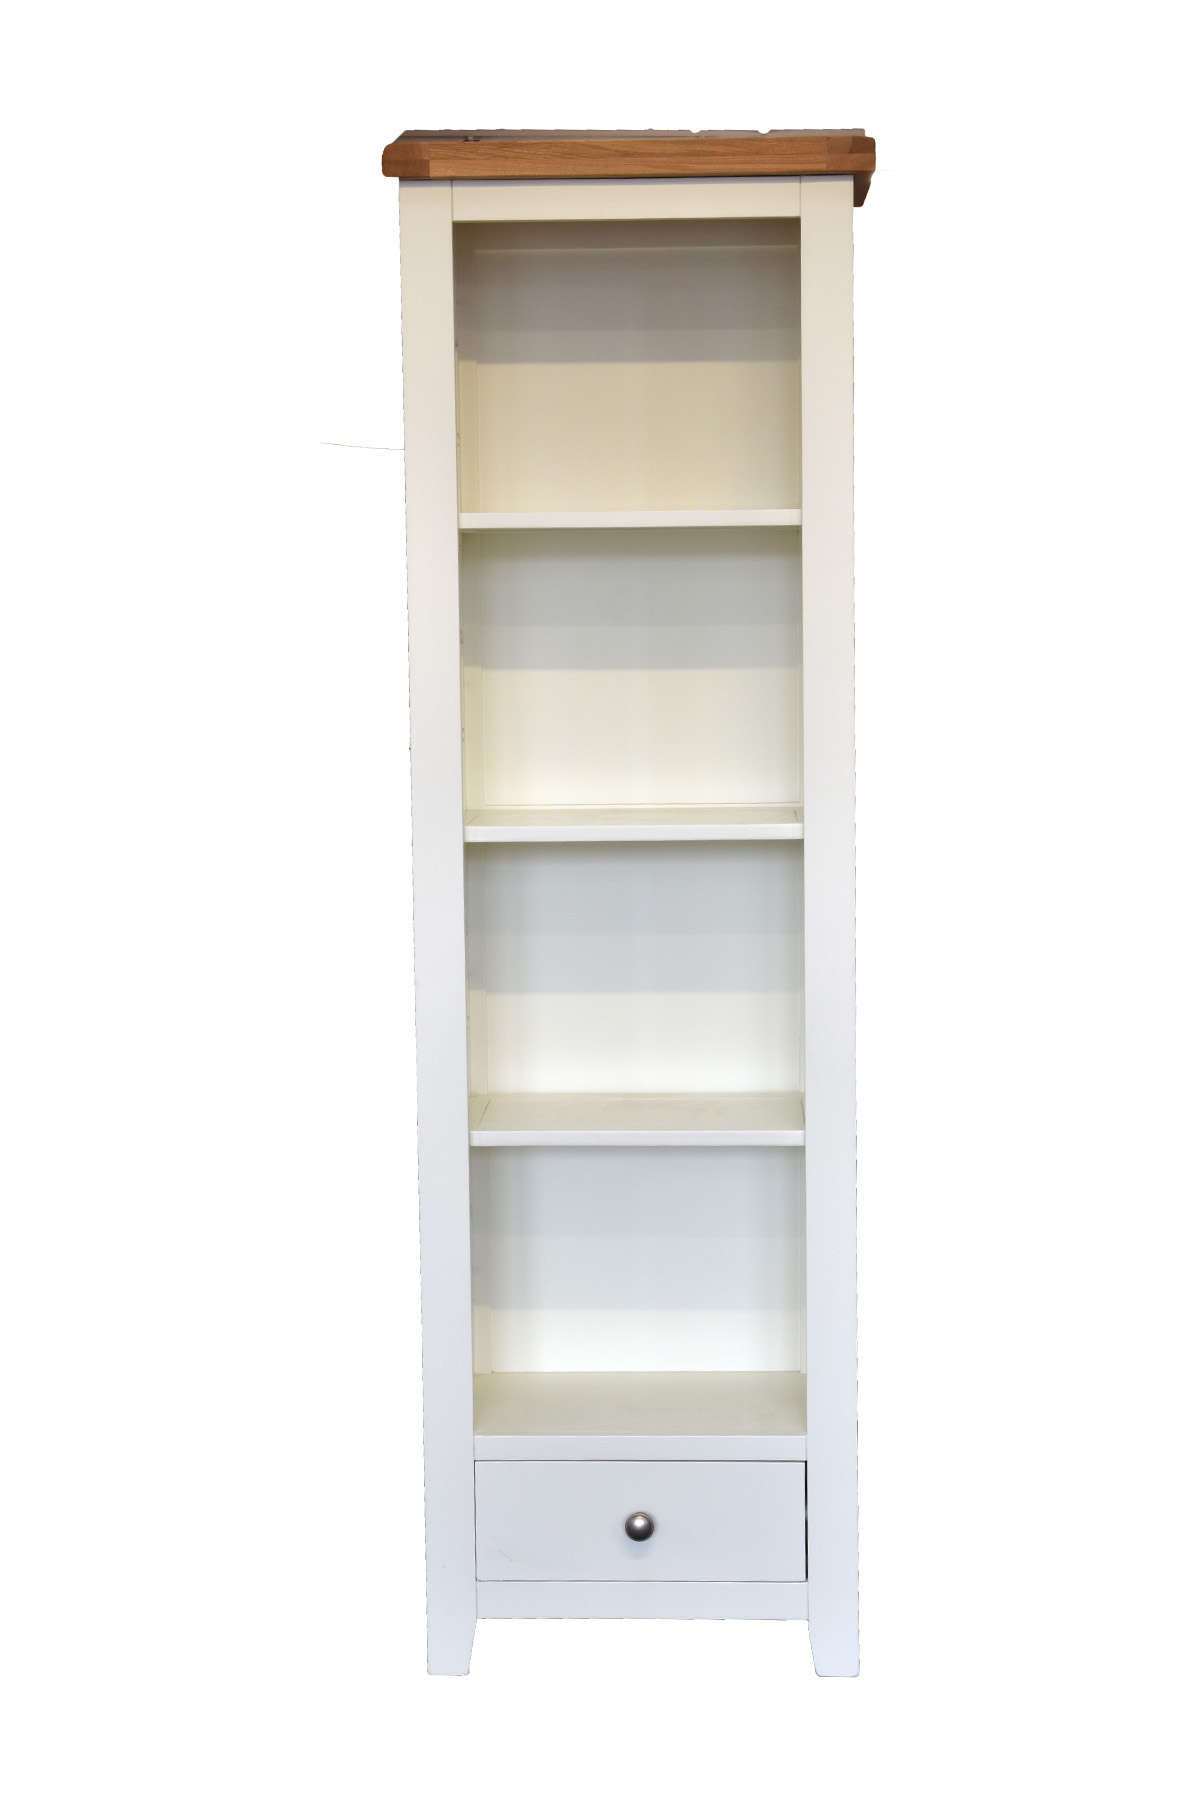 Harrogate White Slim Bookcase Display Unit Solid Oak And Pine With 3 Shelves